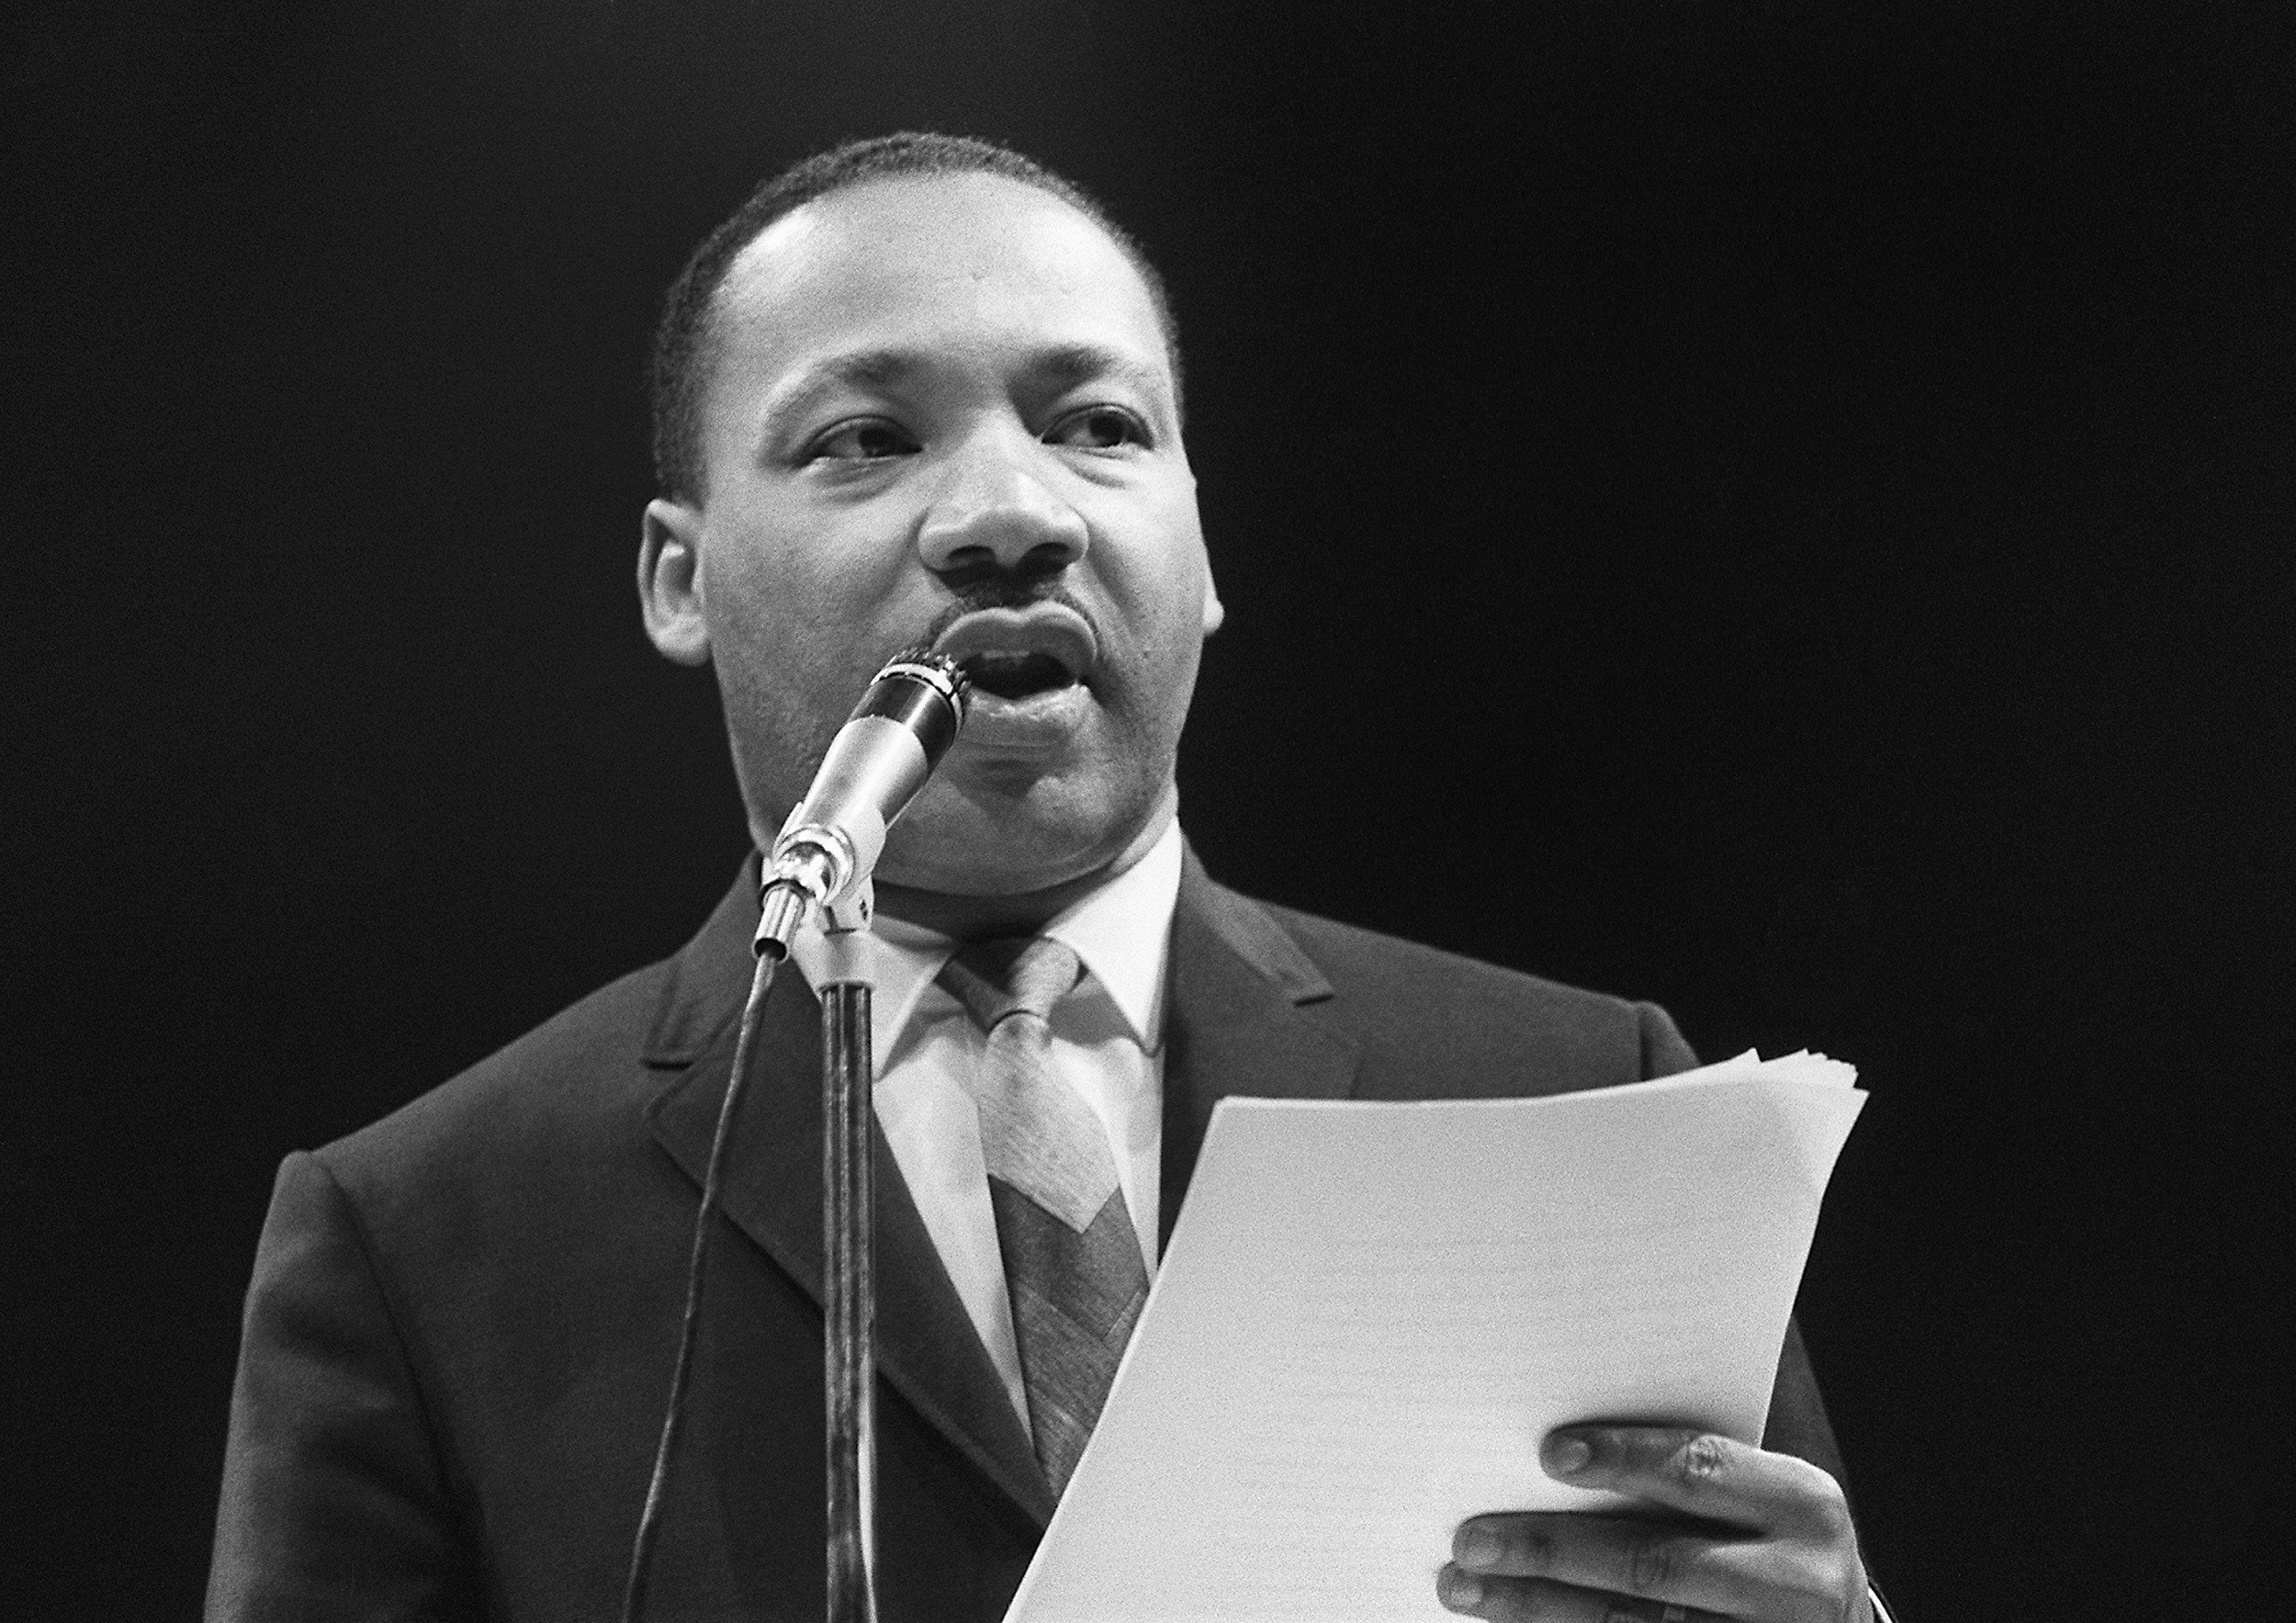 Memphis Celebrates King For #MLK50, But Still Struggles To Honor What He Worked For